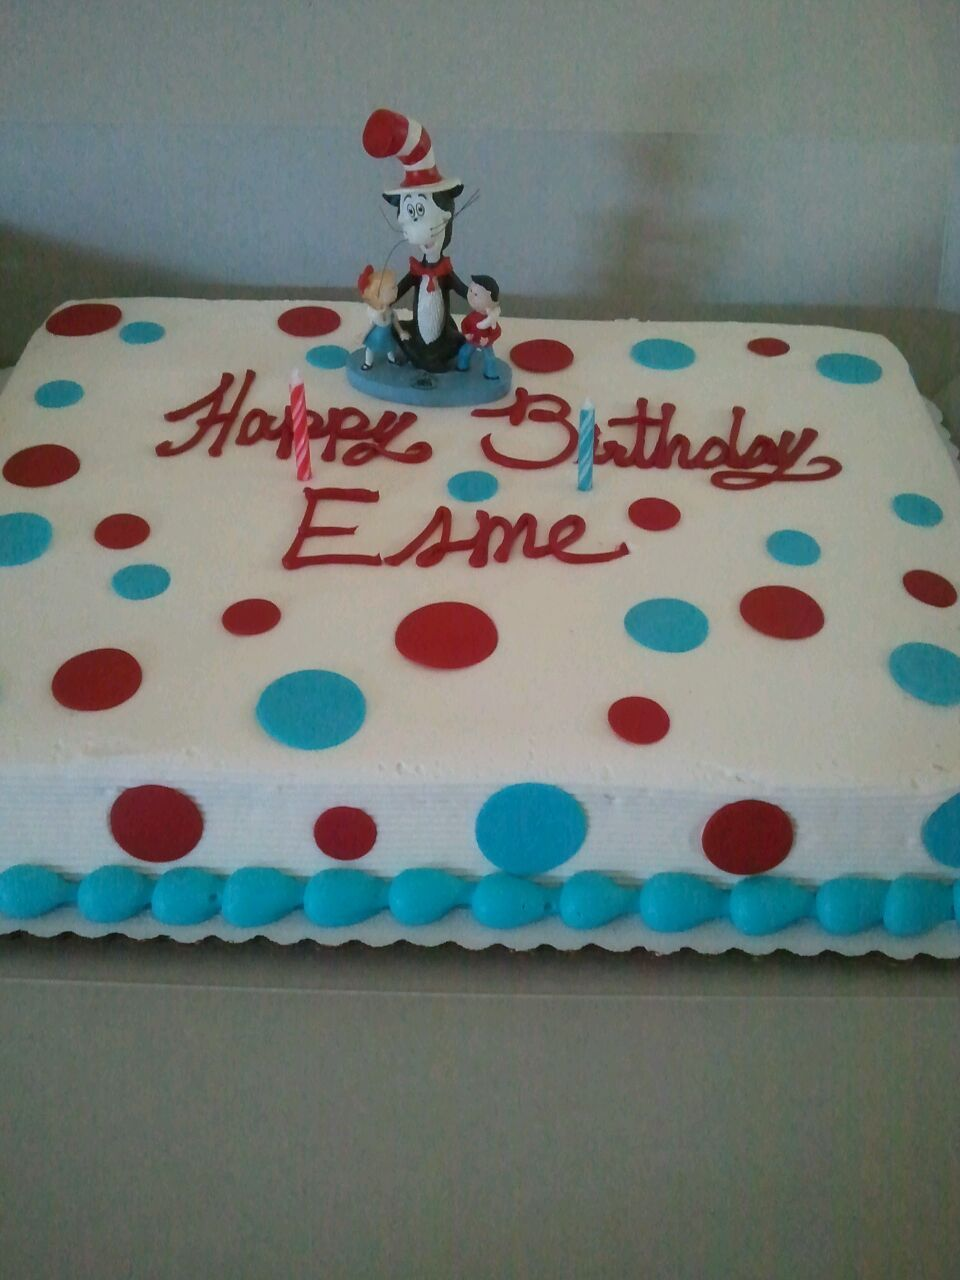 Simple Cat In The Hat Cake From Safeway Adult Birthday Cakes 2nd 1st